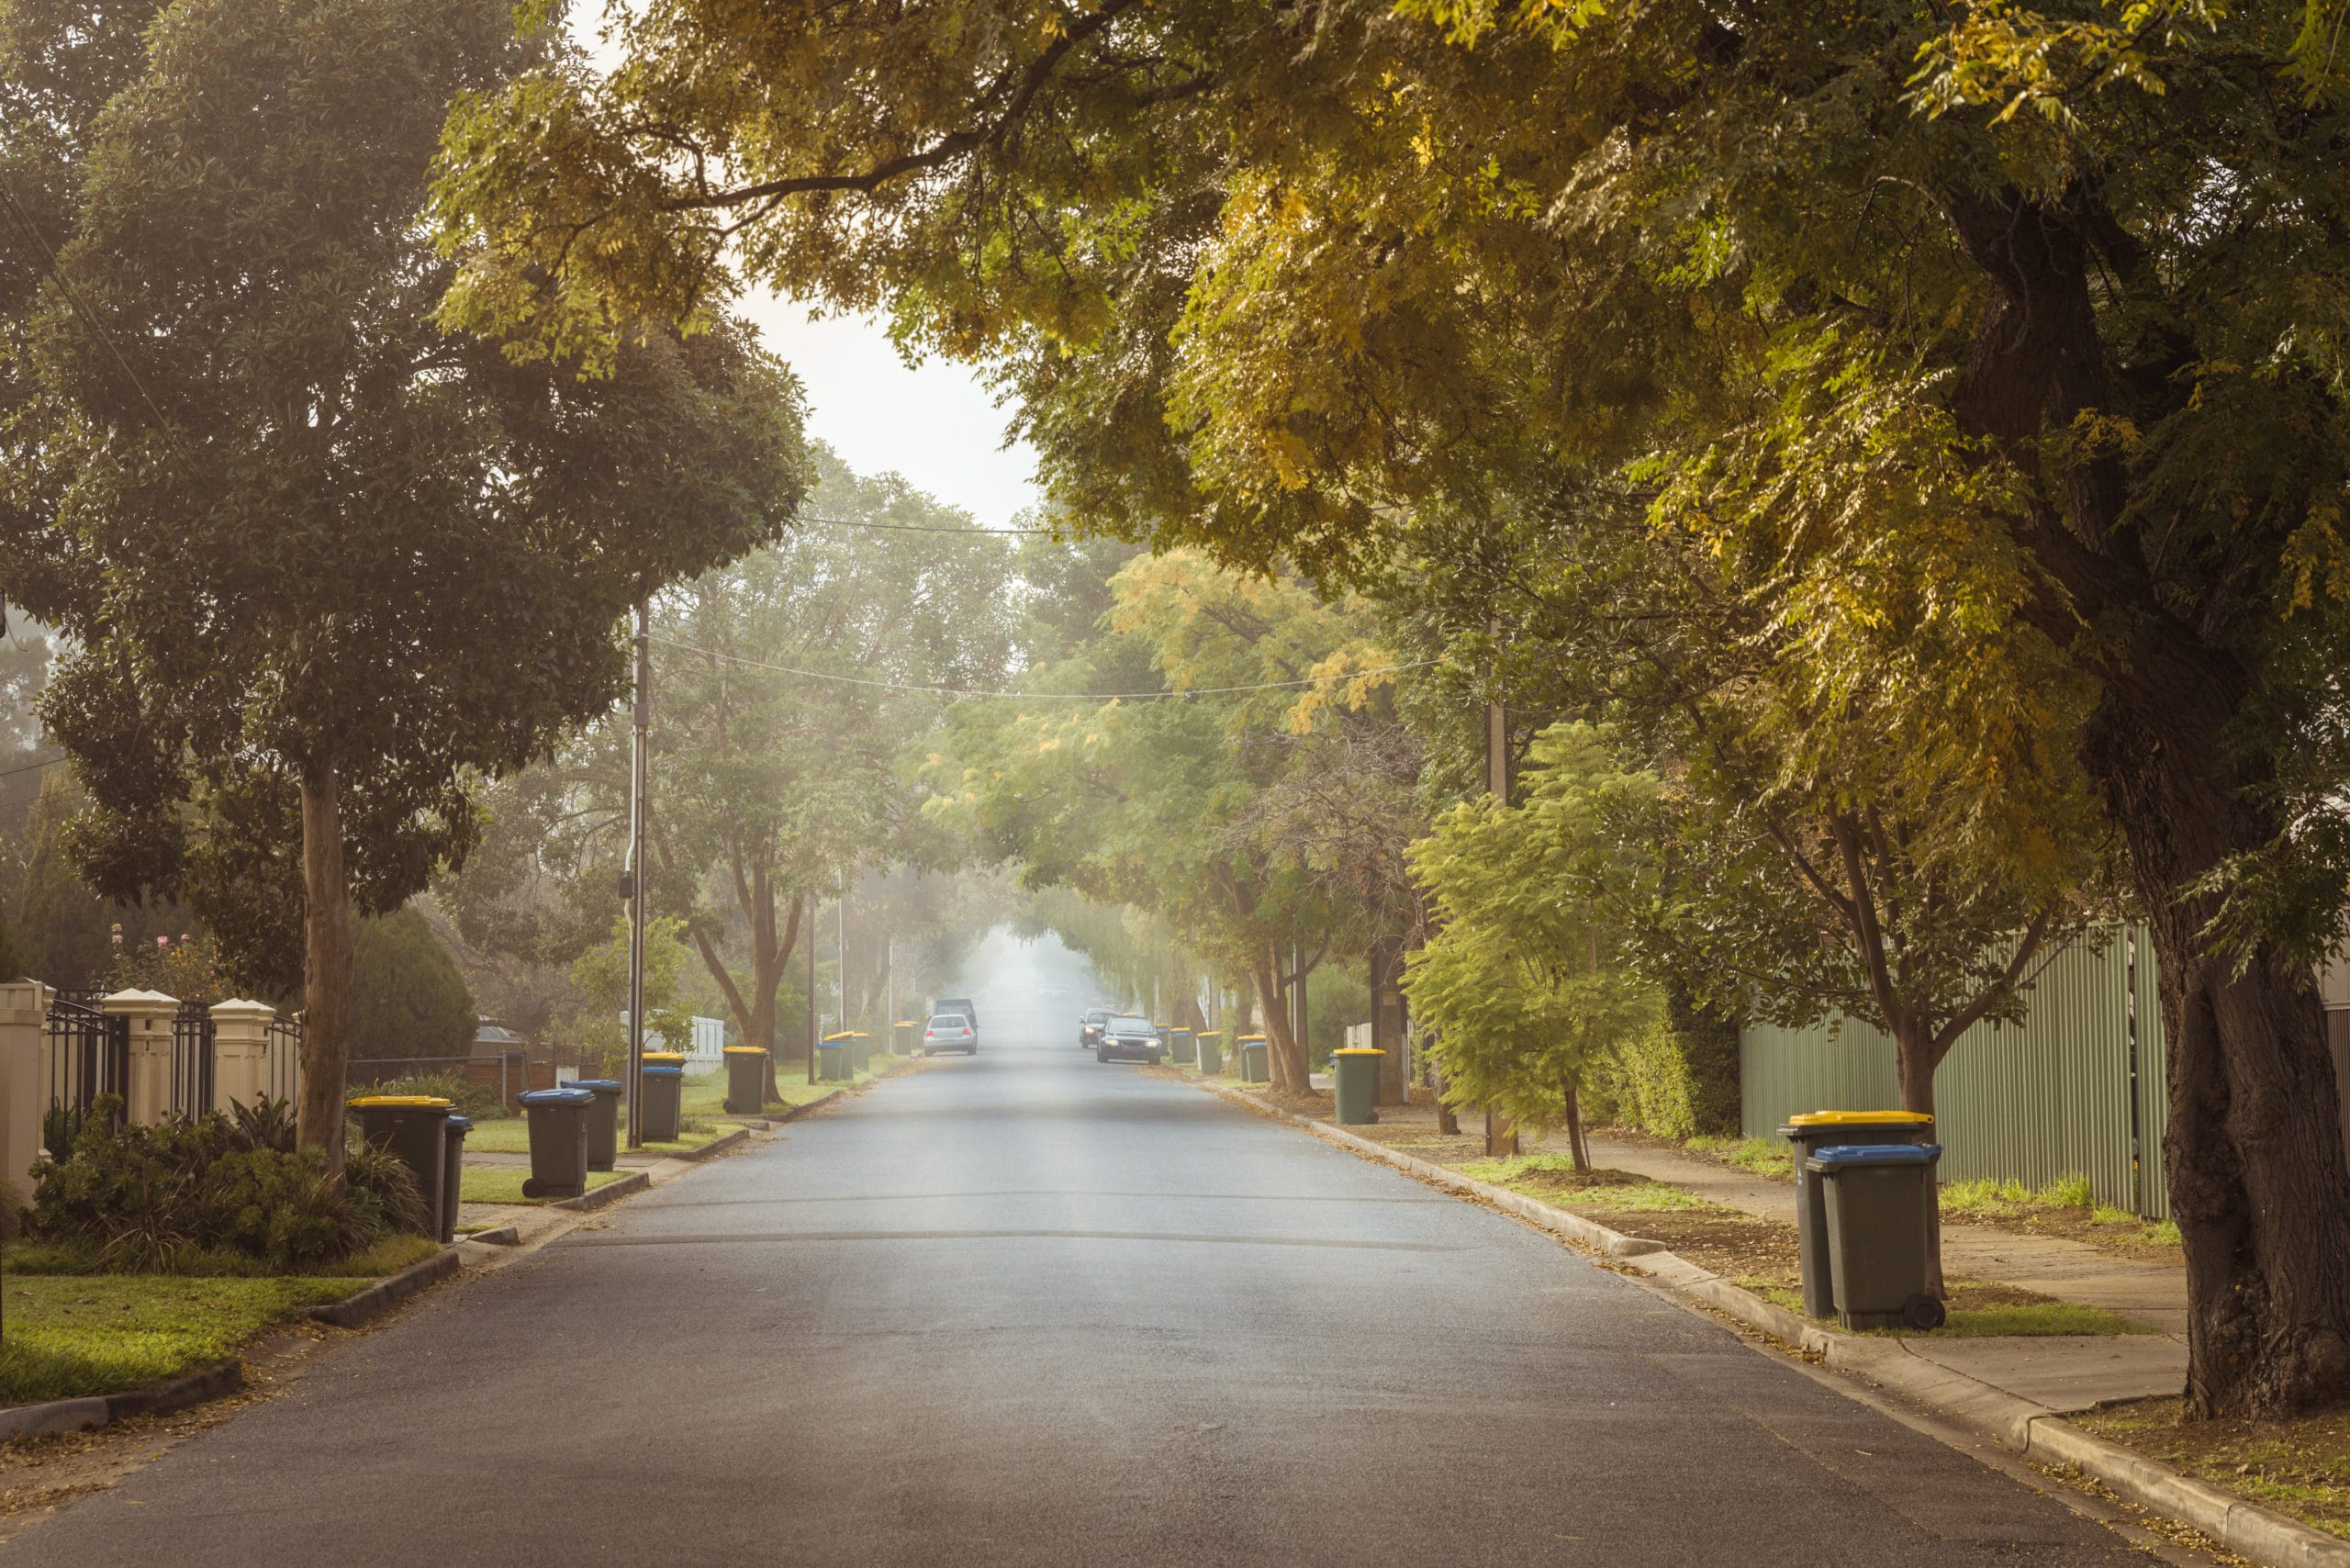 adelaide suburban street with bins